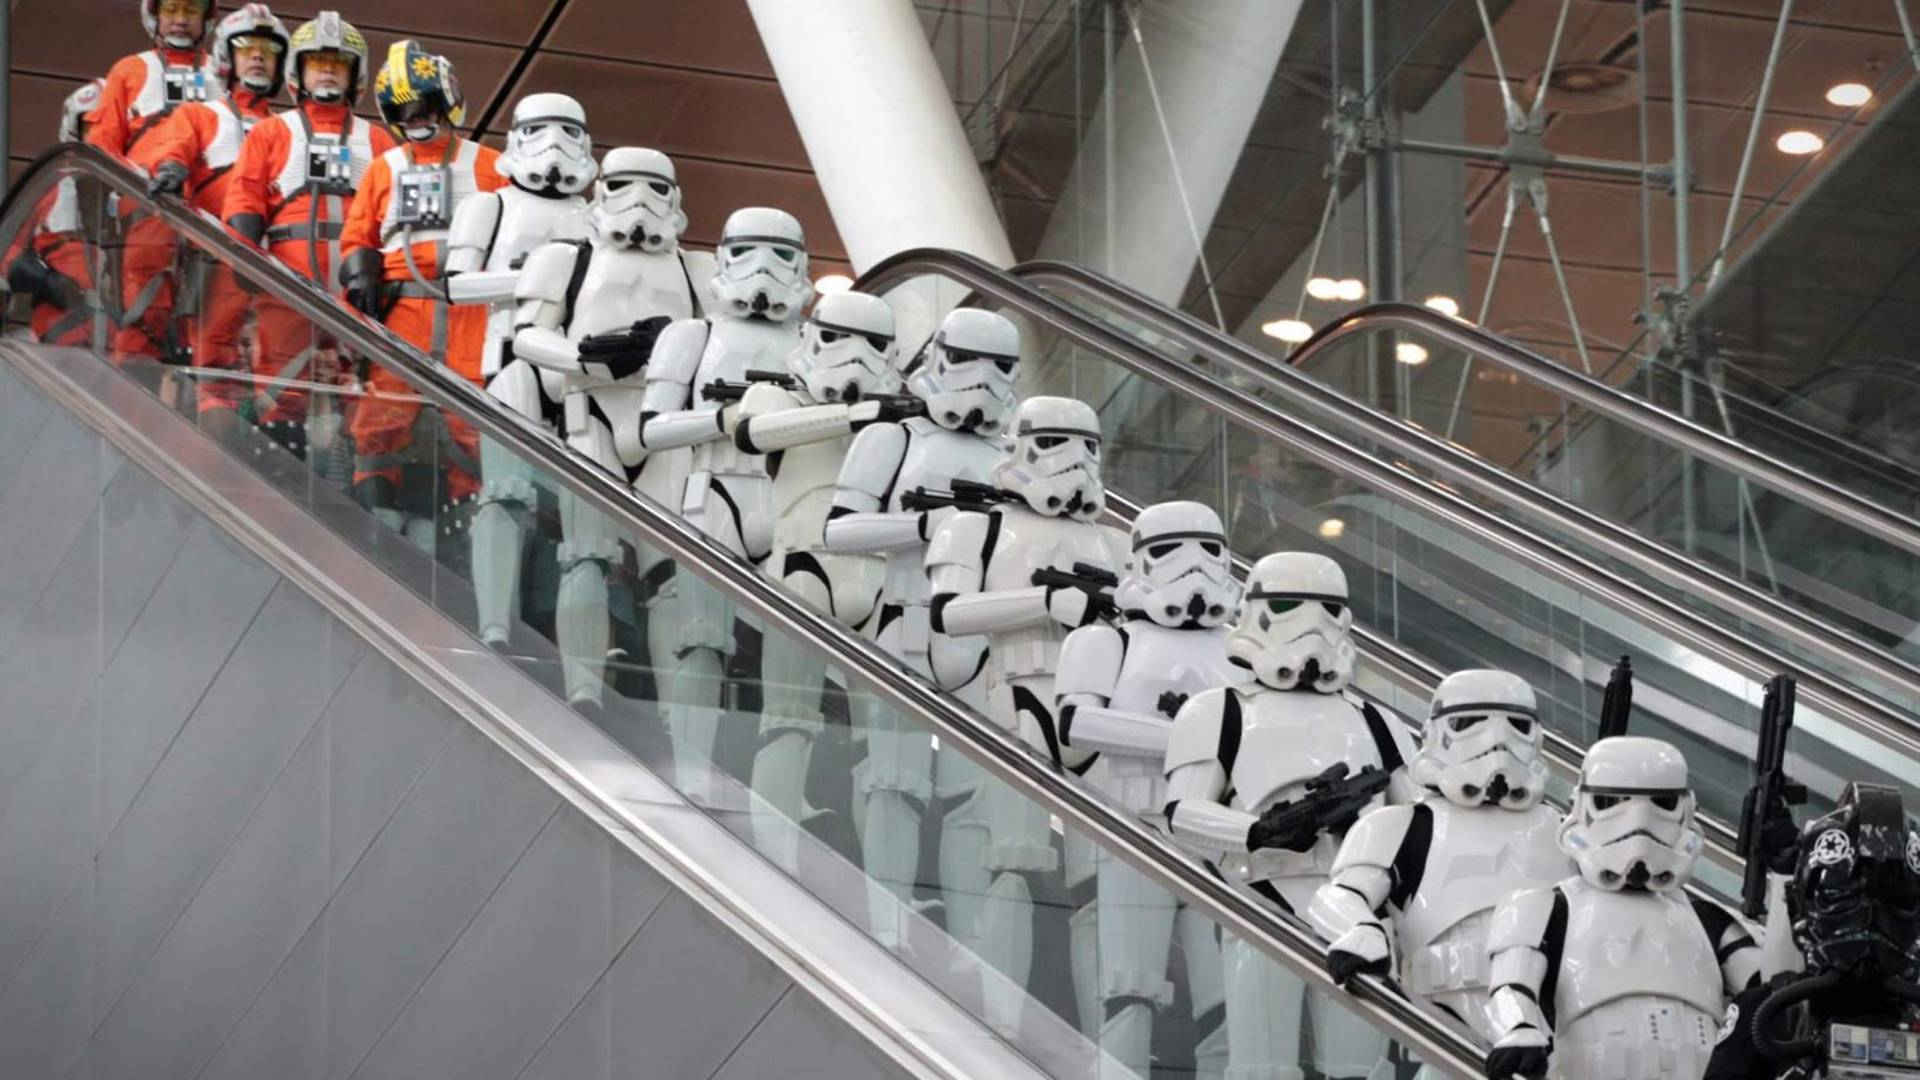 Stormtroopers And Starfighter Pilots Take Over Changi Airport As X Wing And TIE Fighter Land